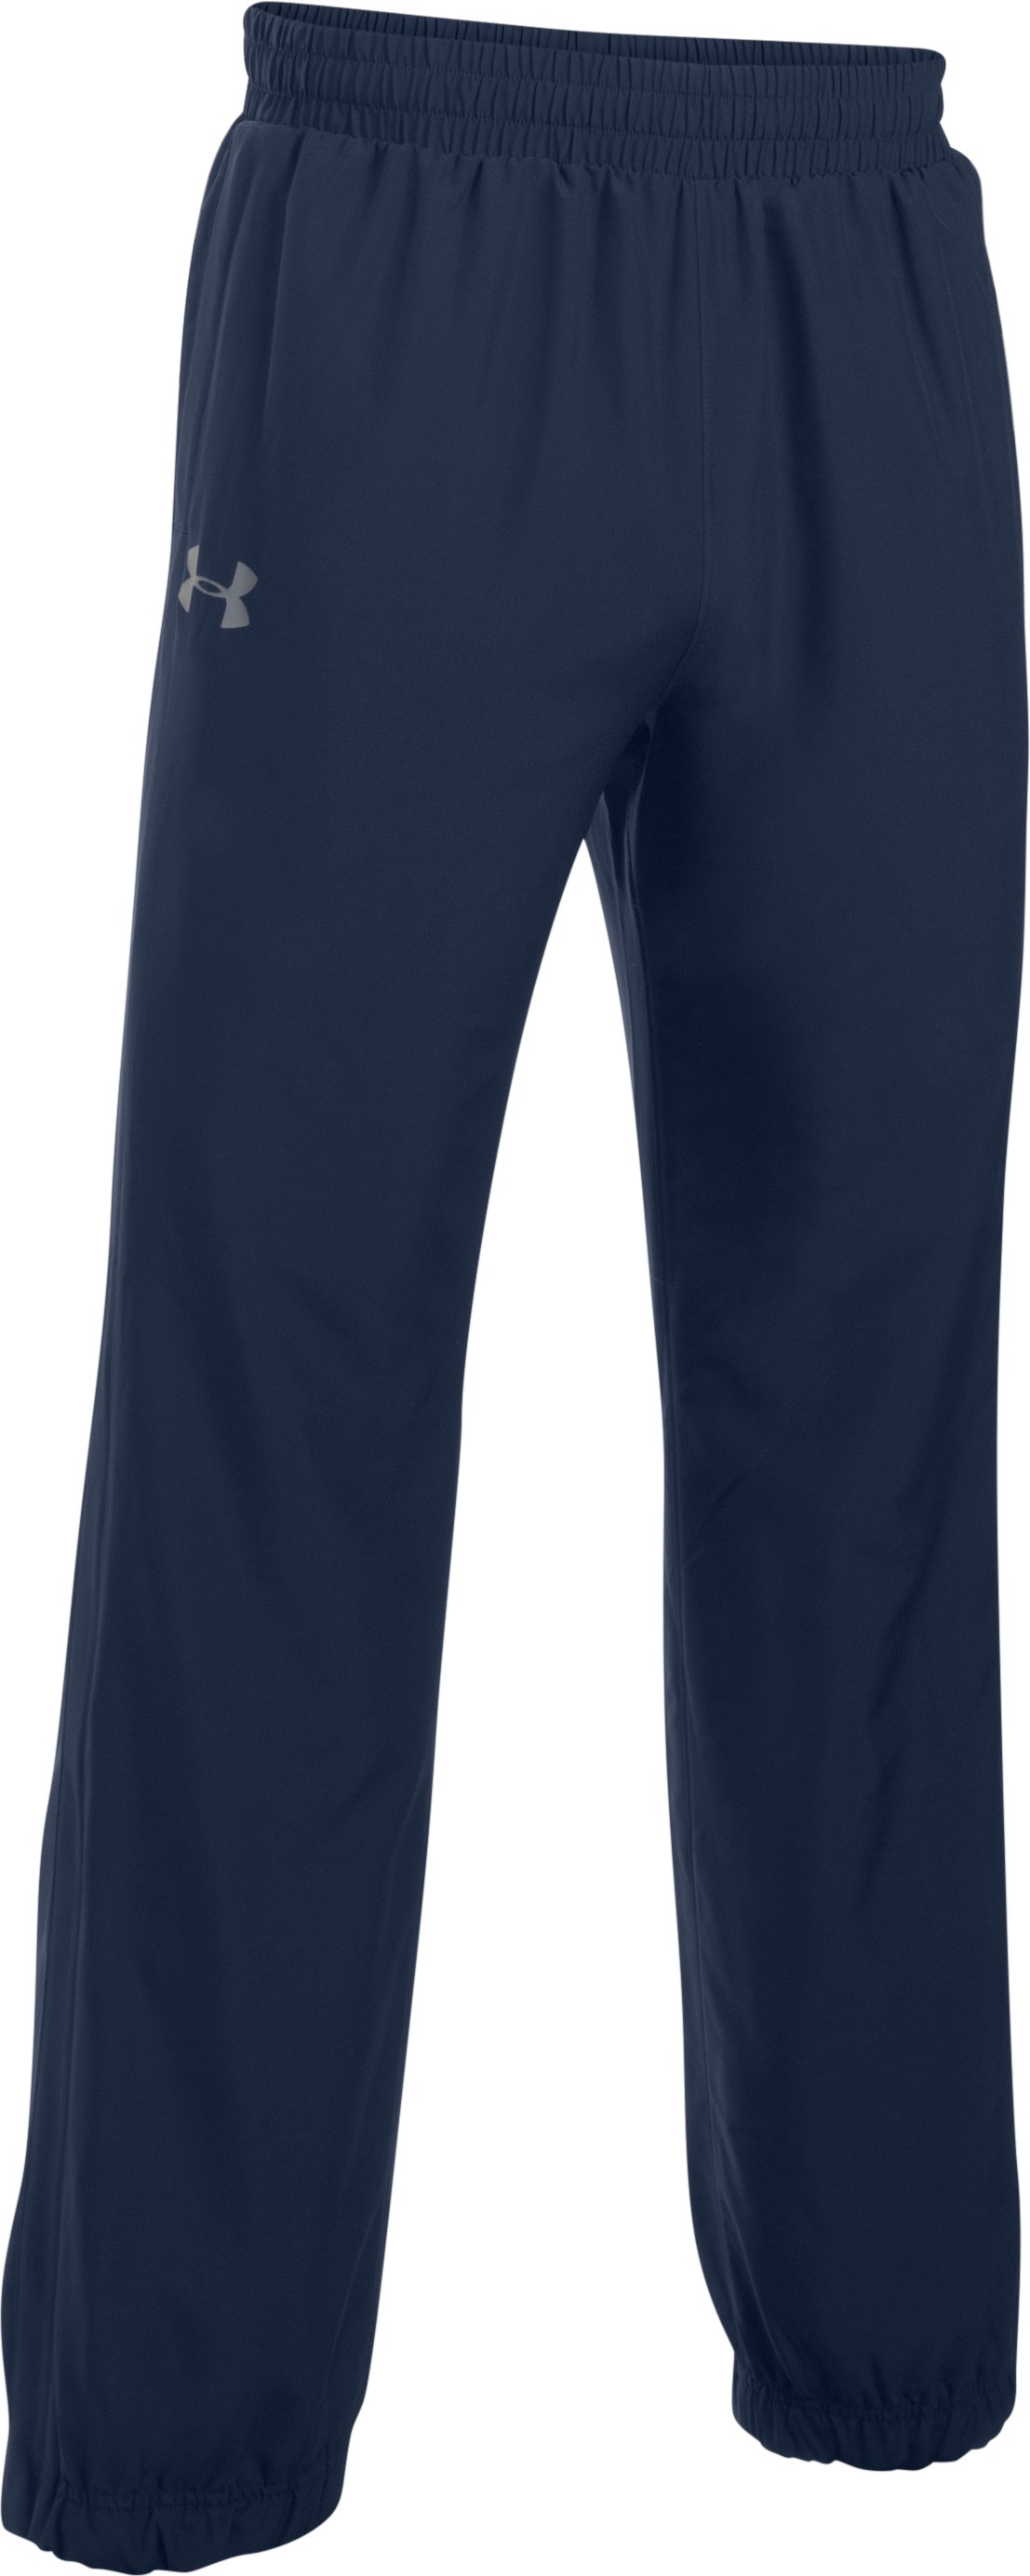 Men's UA Storm Powerhouse Cuffed Pants, Midnight Navy